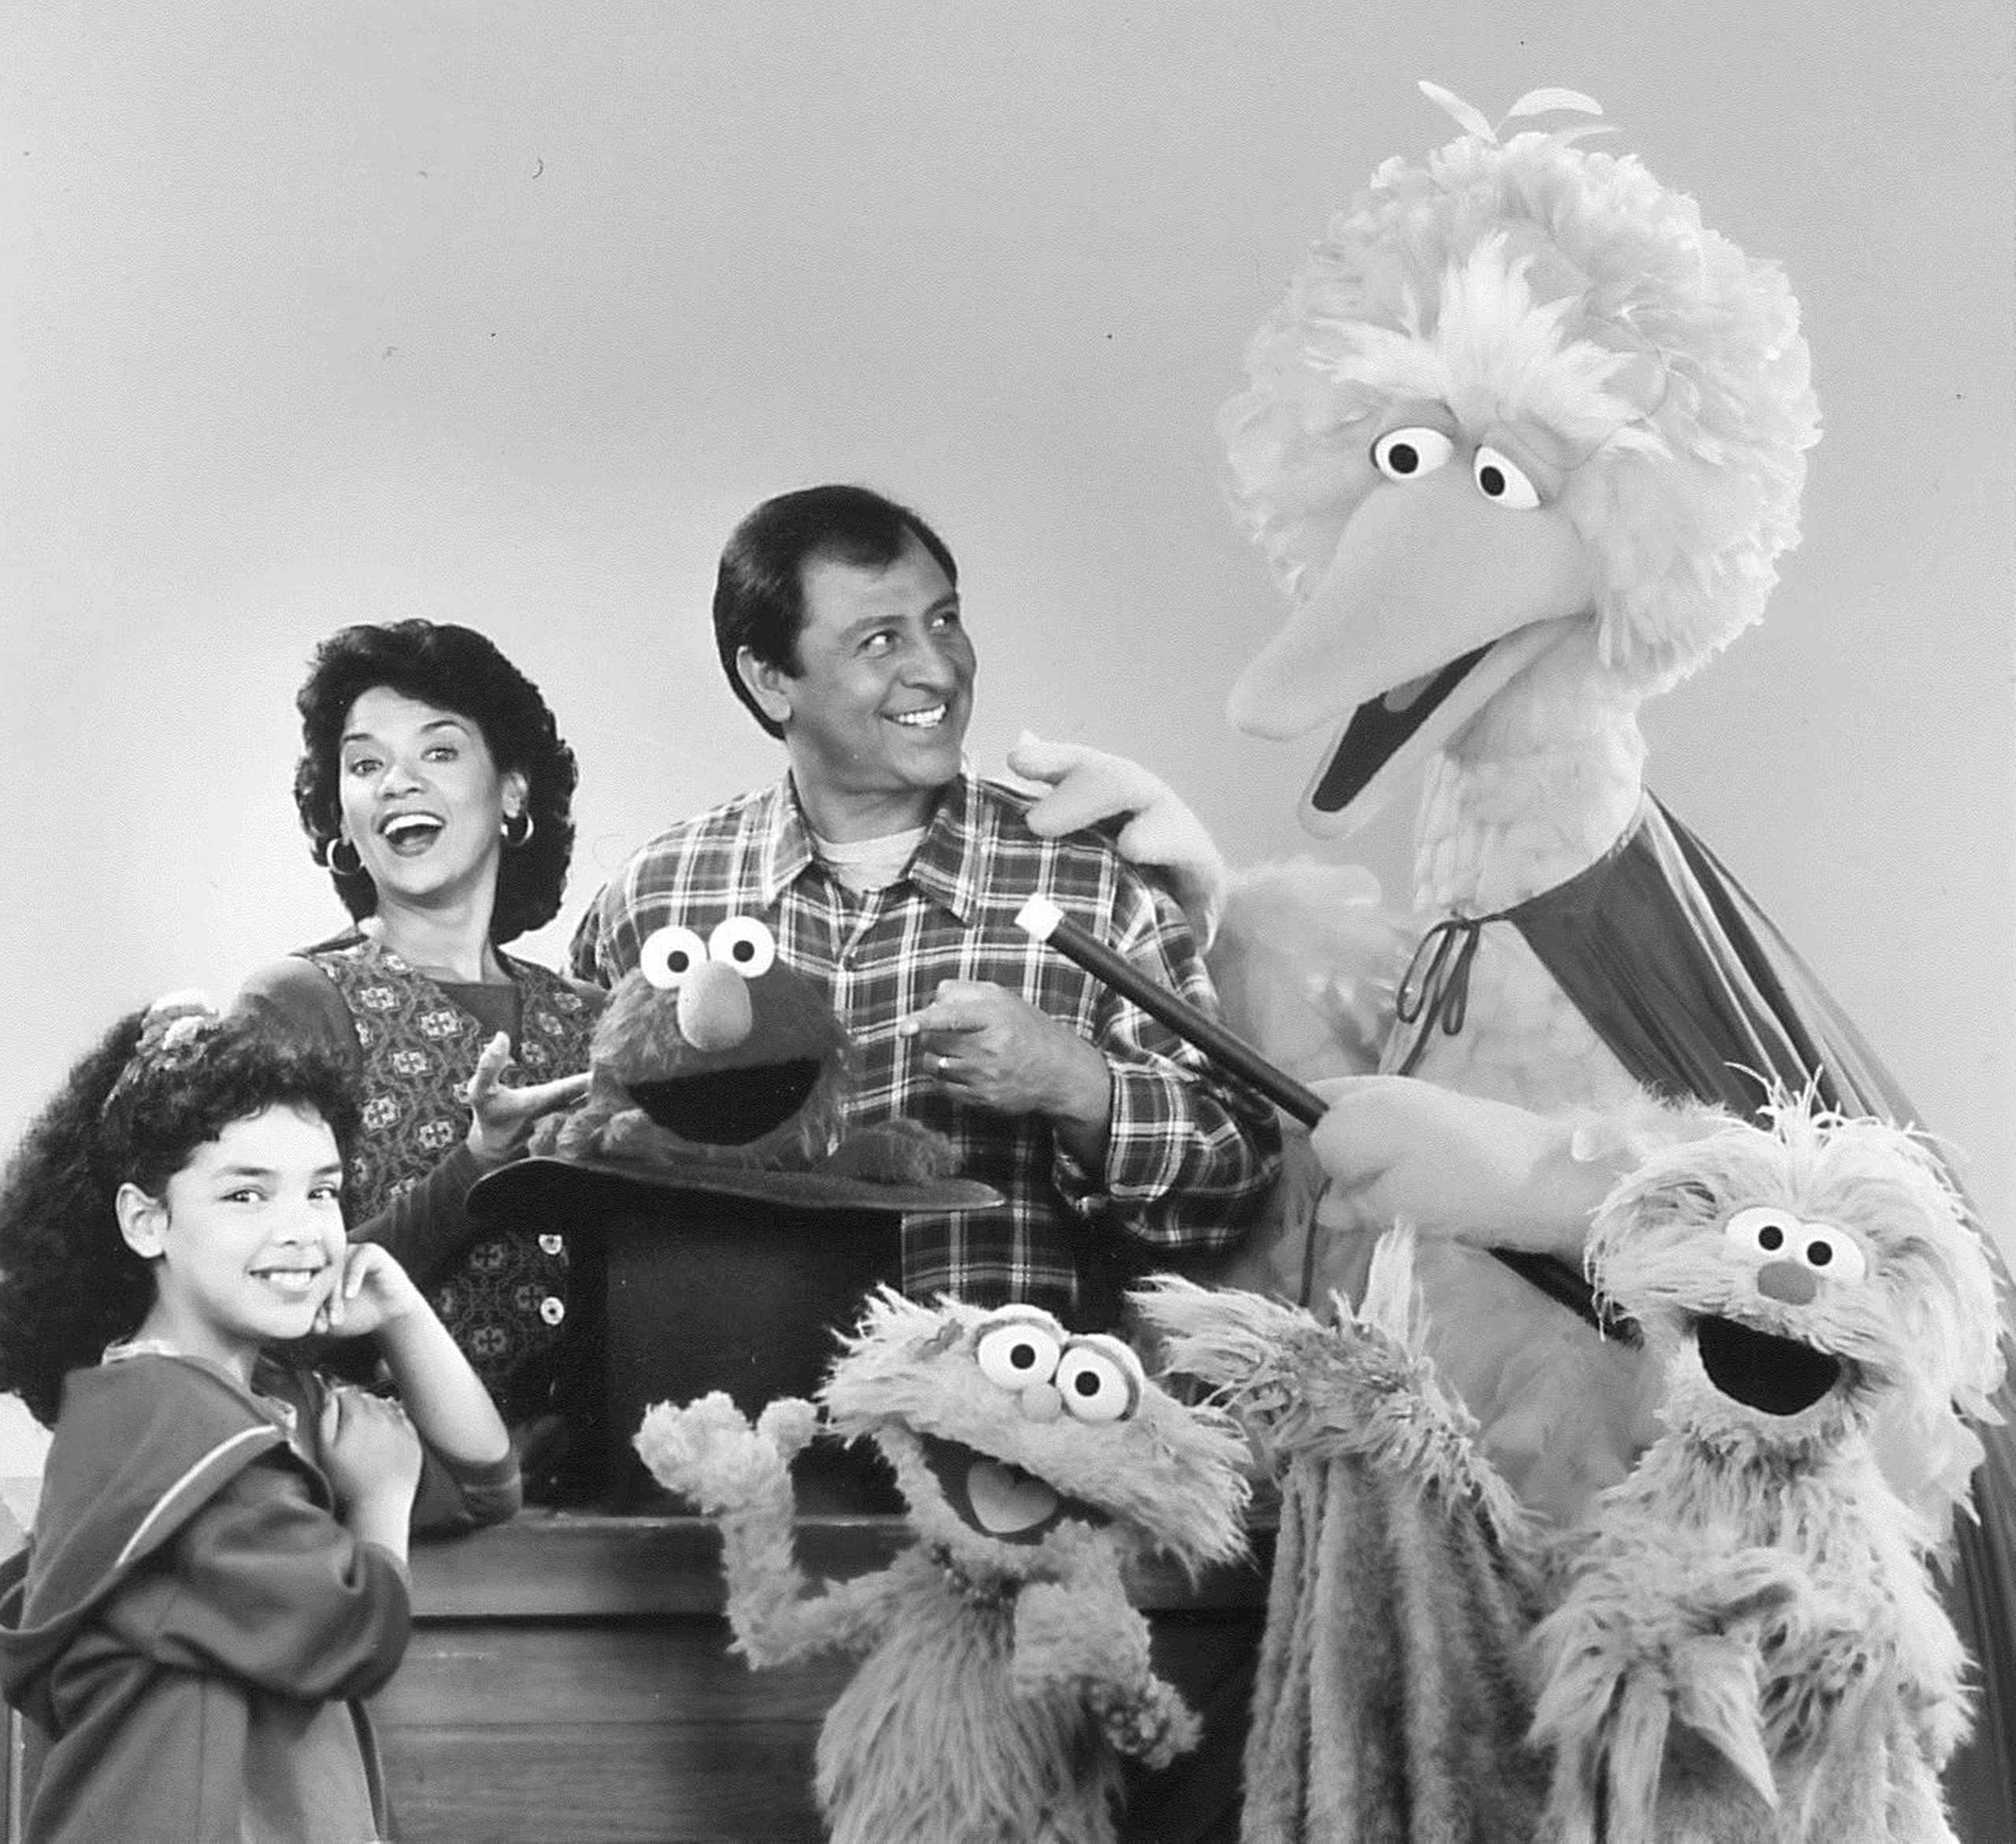 """The musicians behind """"Sesame Street"""" strived to write inventive, humorous songs such as """"Rubber Duckie"""" and """"C is for Cookie"""" that both children and adults could enjoy. (Library of Congress)"""